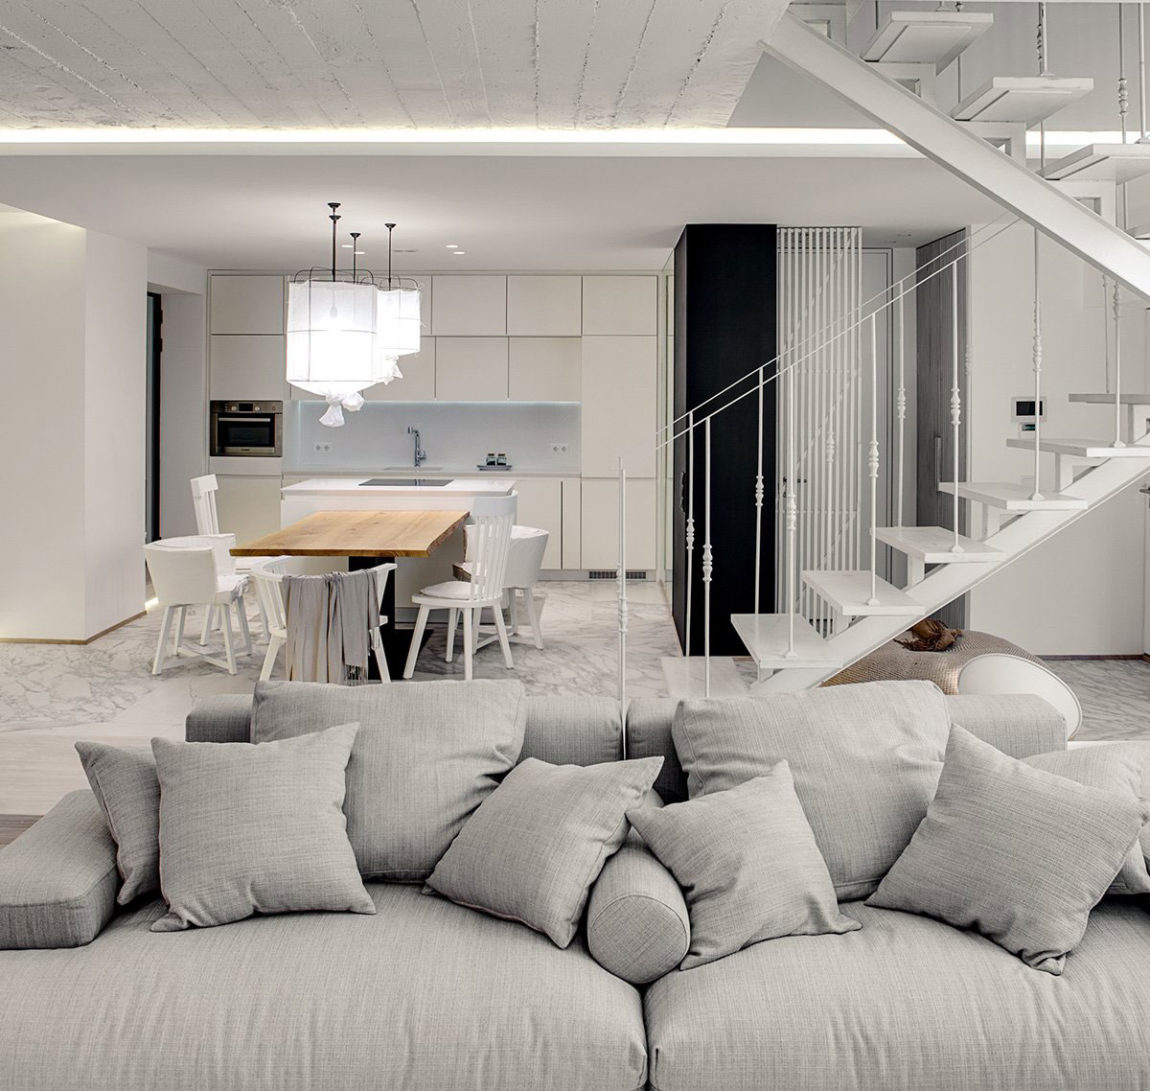 A Bright White Home by FORM Architectural Bureau (5)